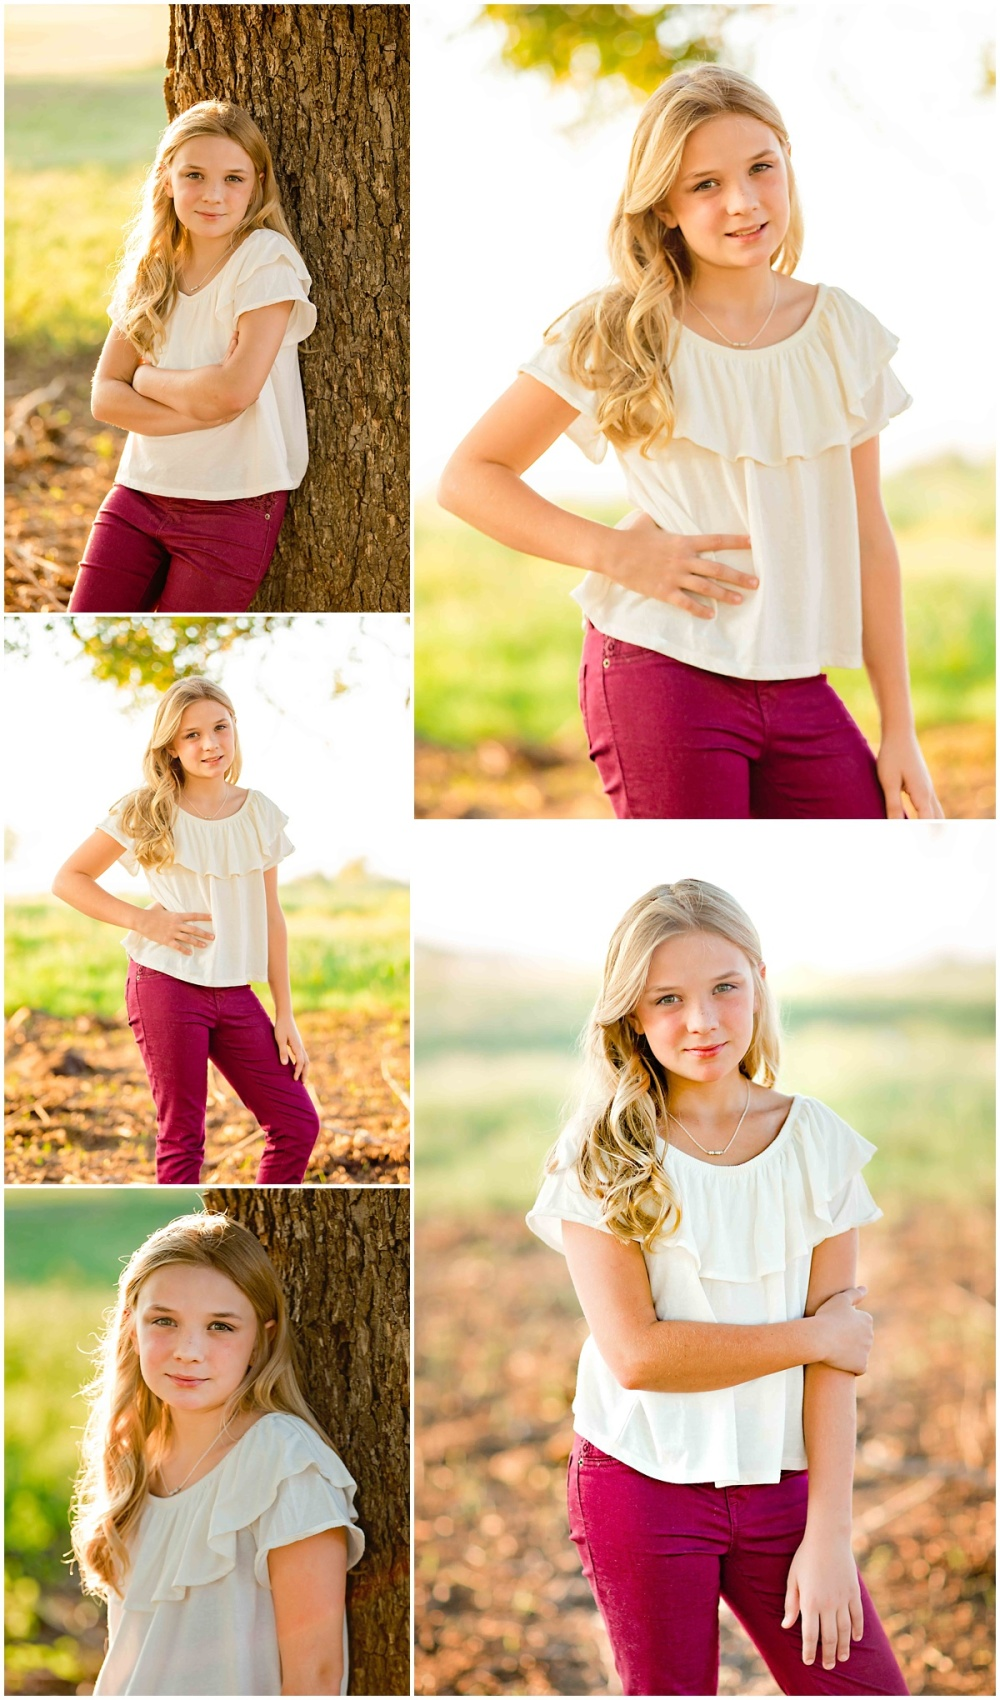 Family-Children-Maternity-Portraits-San-Antonio-Hill-Country-Texas-Carly-Barton-Photography_0025.jpg